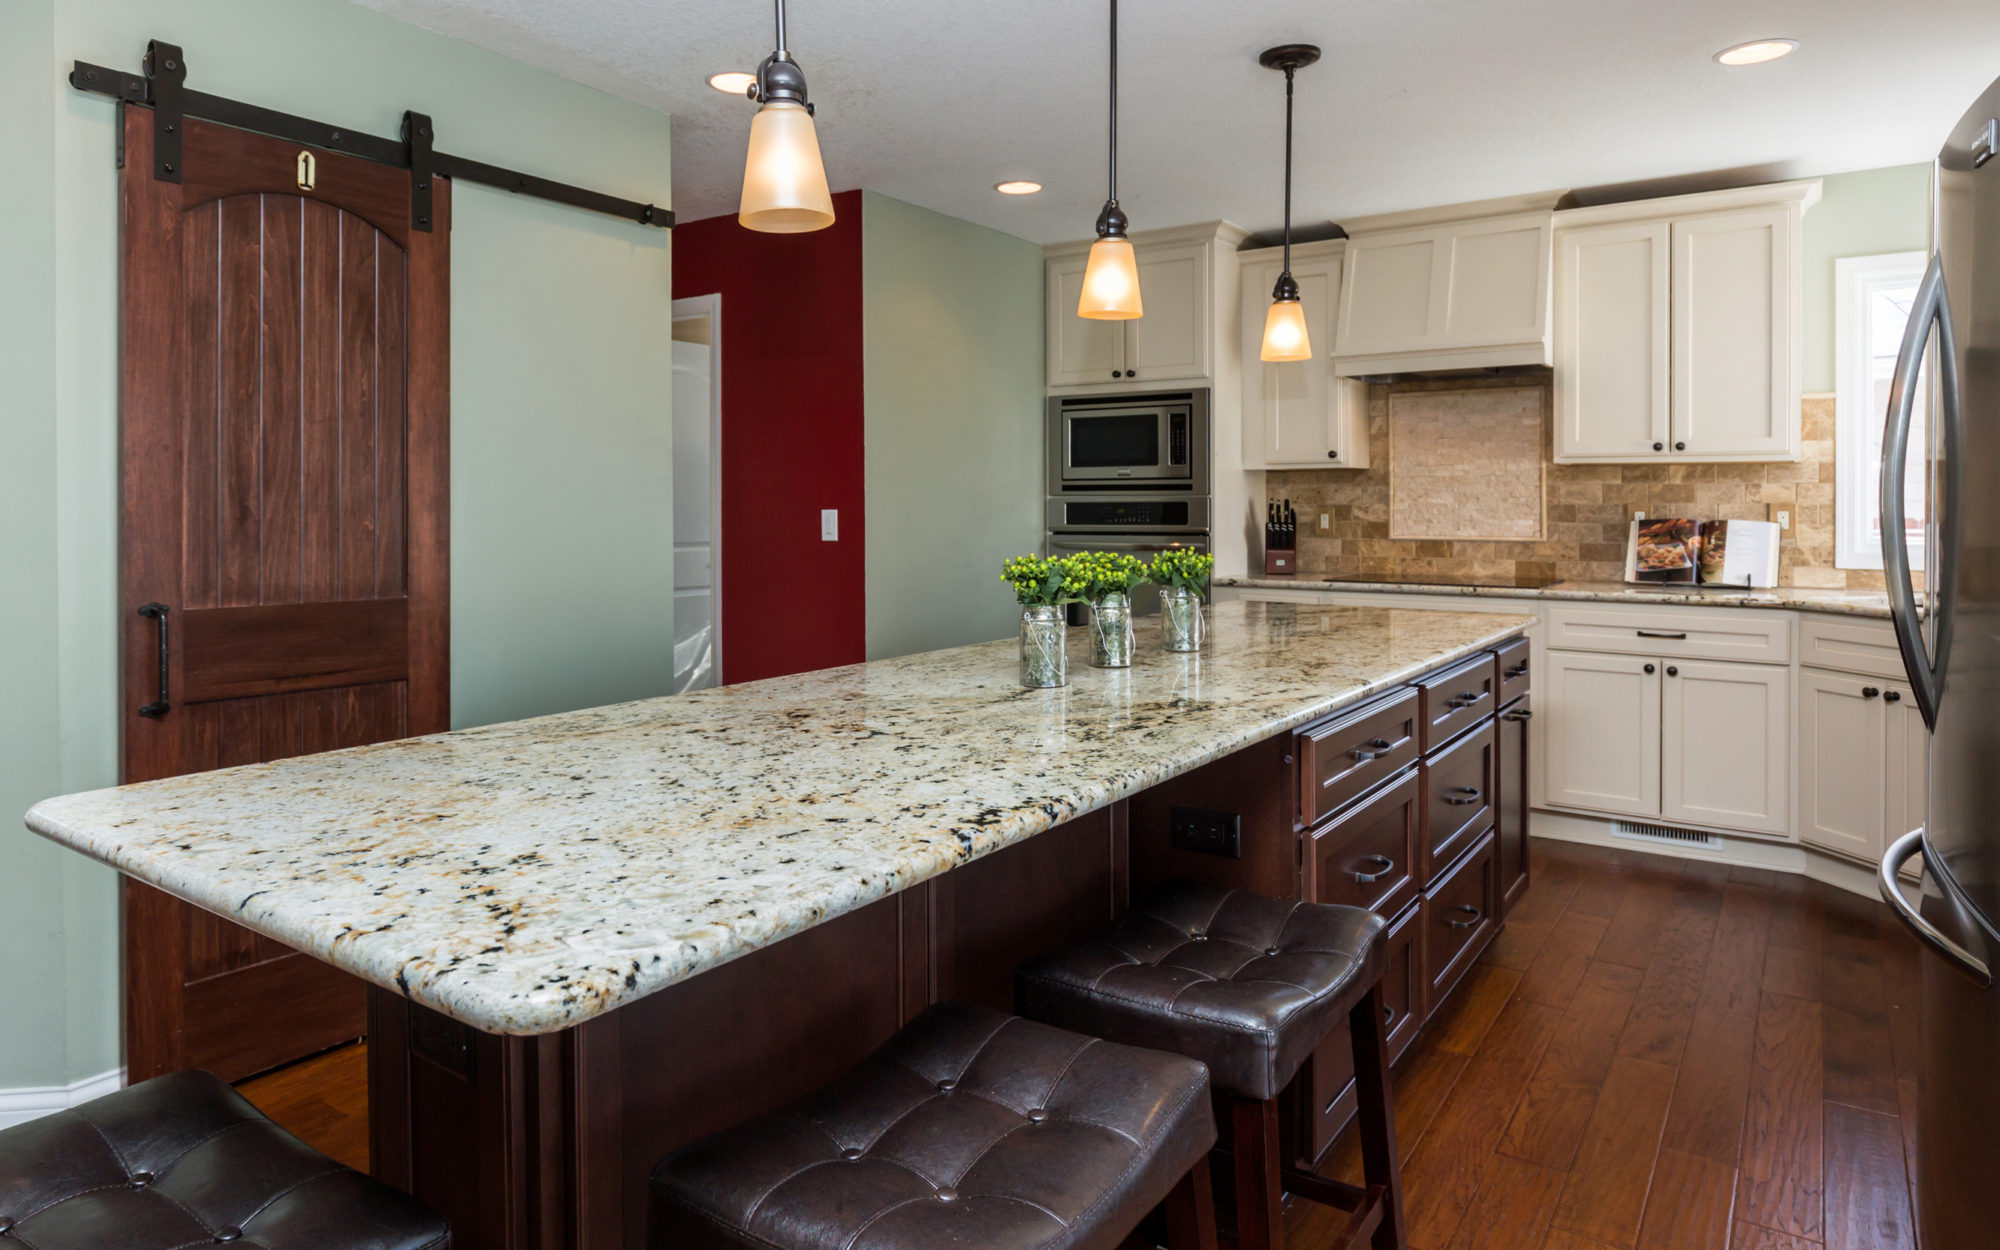 Etonnant Featured Des Moines Kitchen Remodels. View All Kitchens